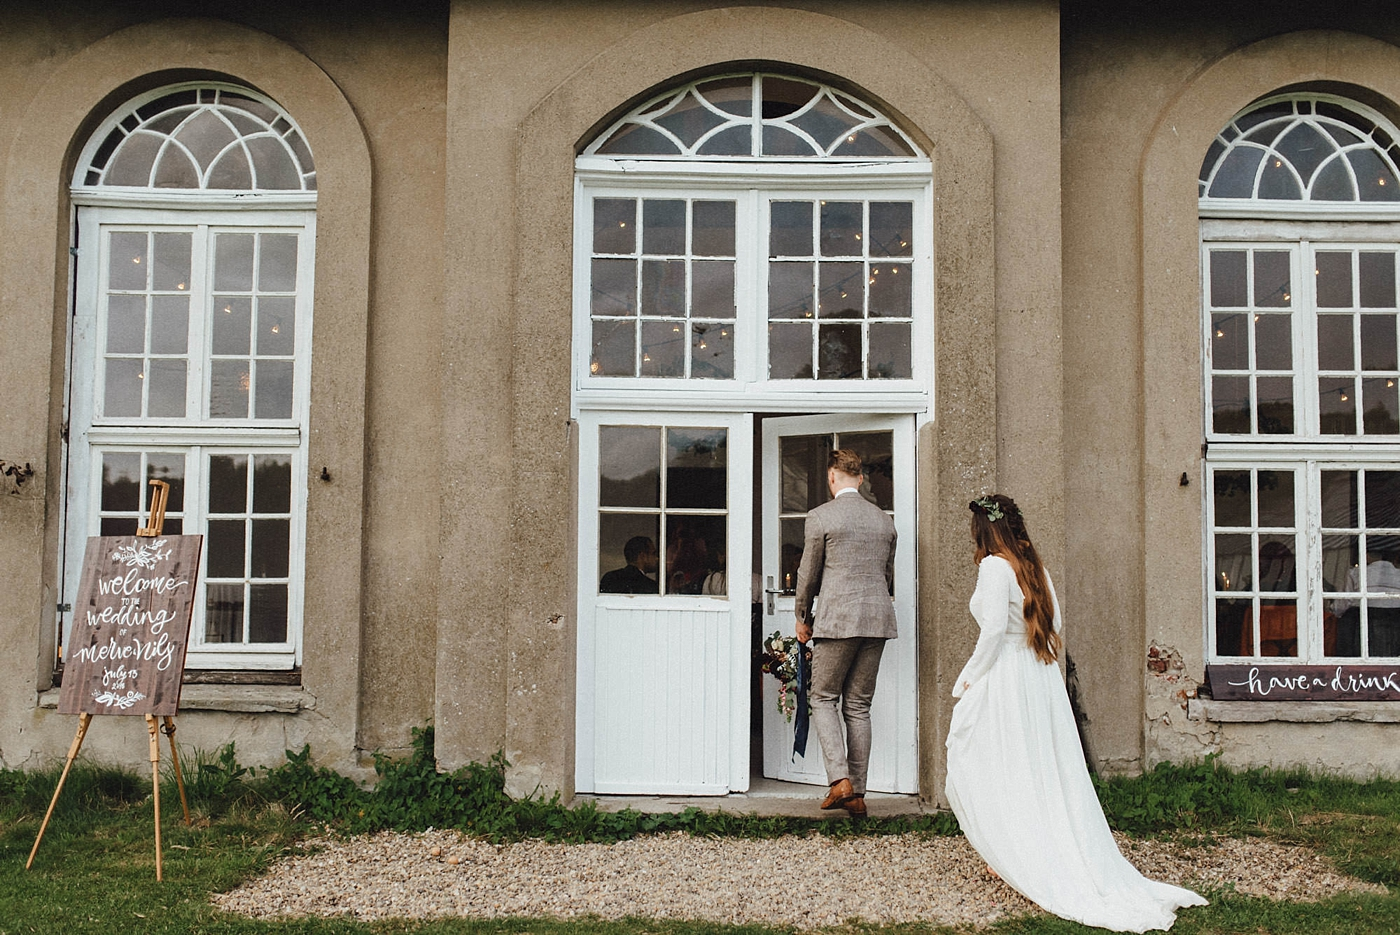 urban-elopement-wedding-254 Merve & Nils emotionales Elopement - Wedding Wesel & Schottlandurban elopement wedding 254 1